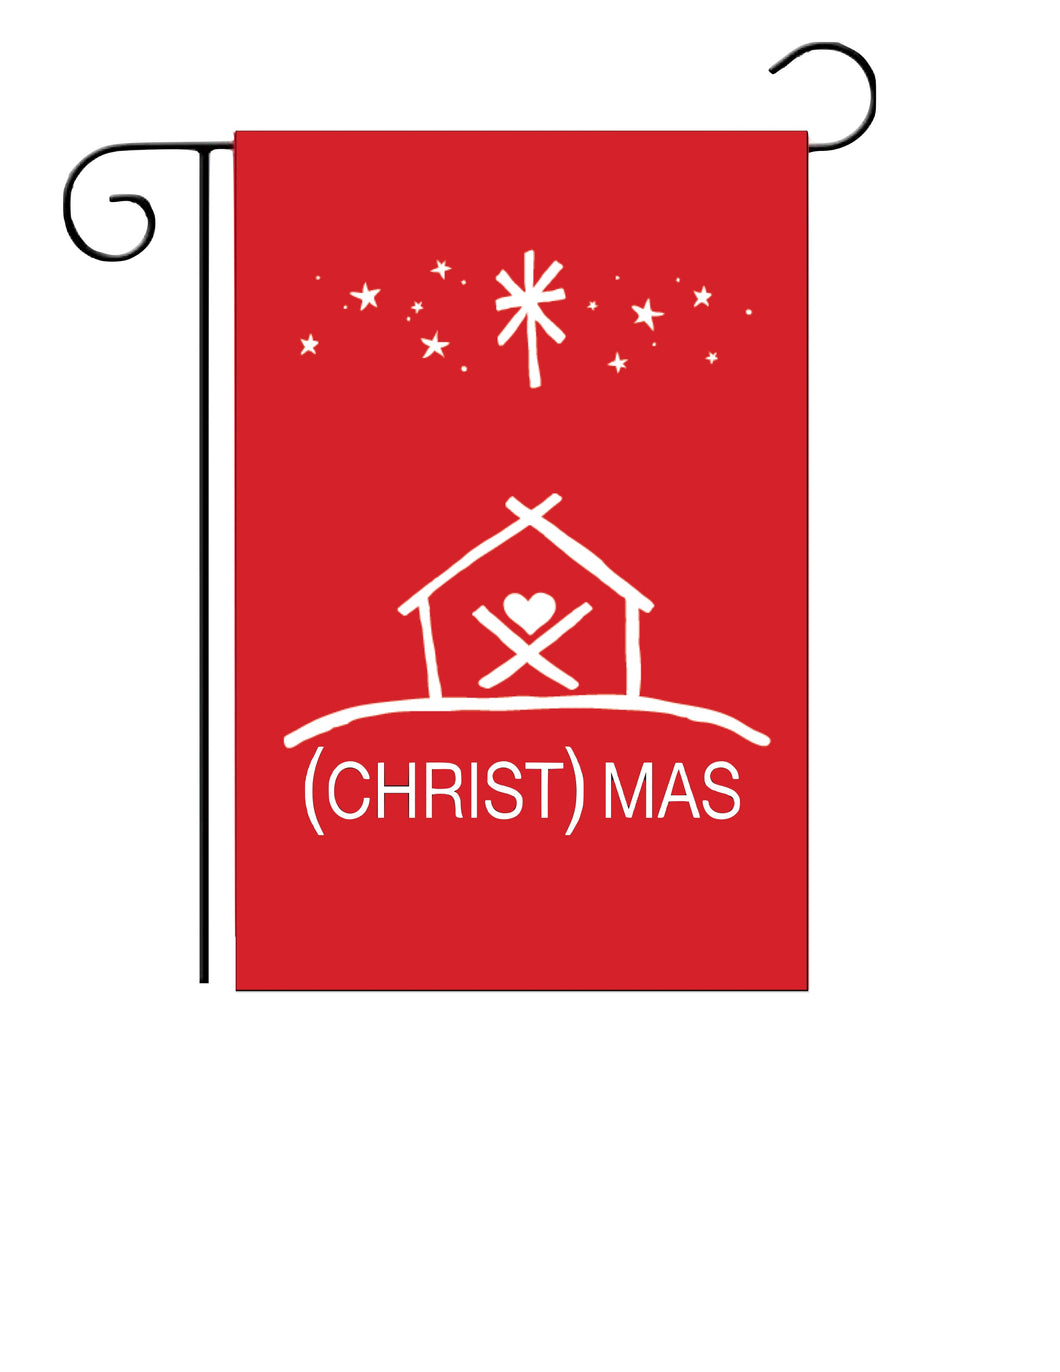 (CHRIST)MAS Garden Flag - LTD Edition 2020